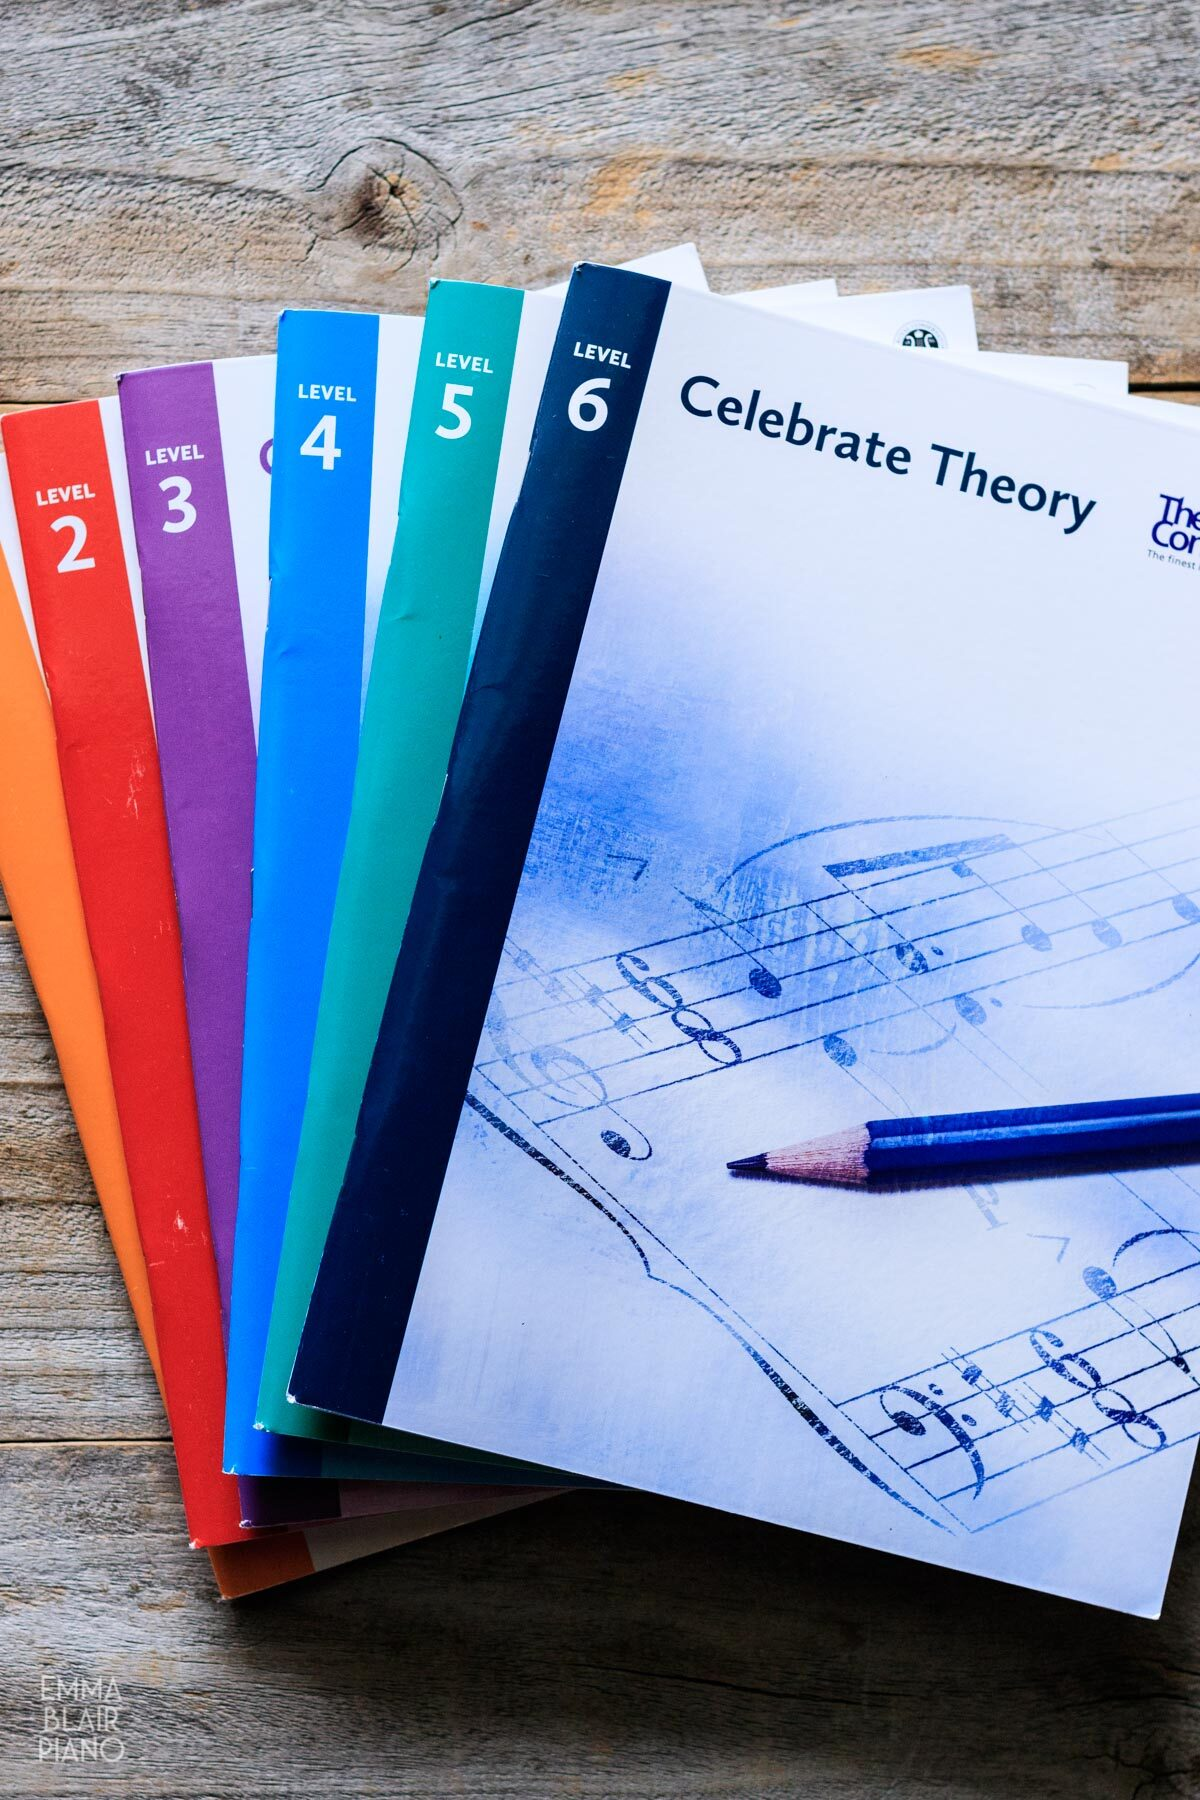 stack of music theory books from levels 1-6